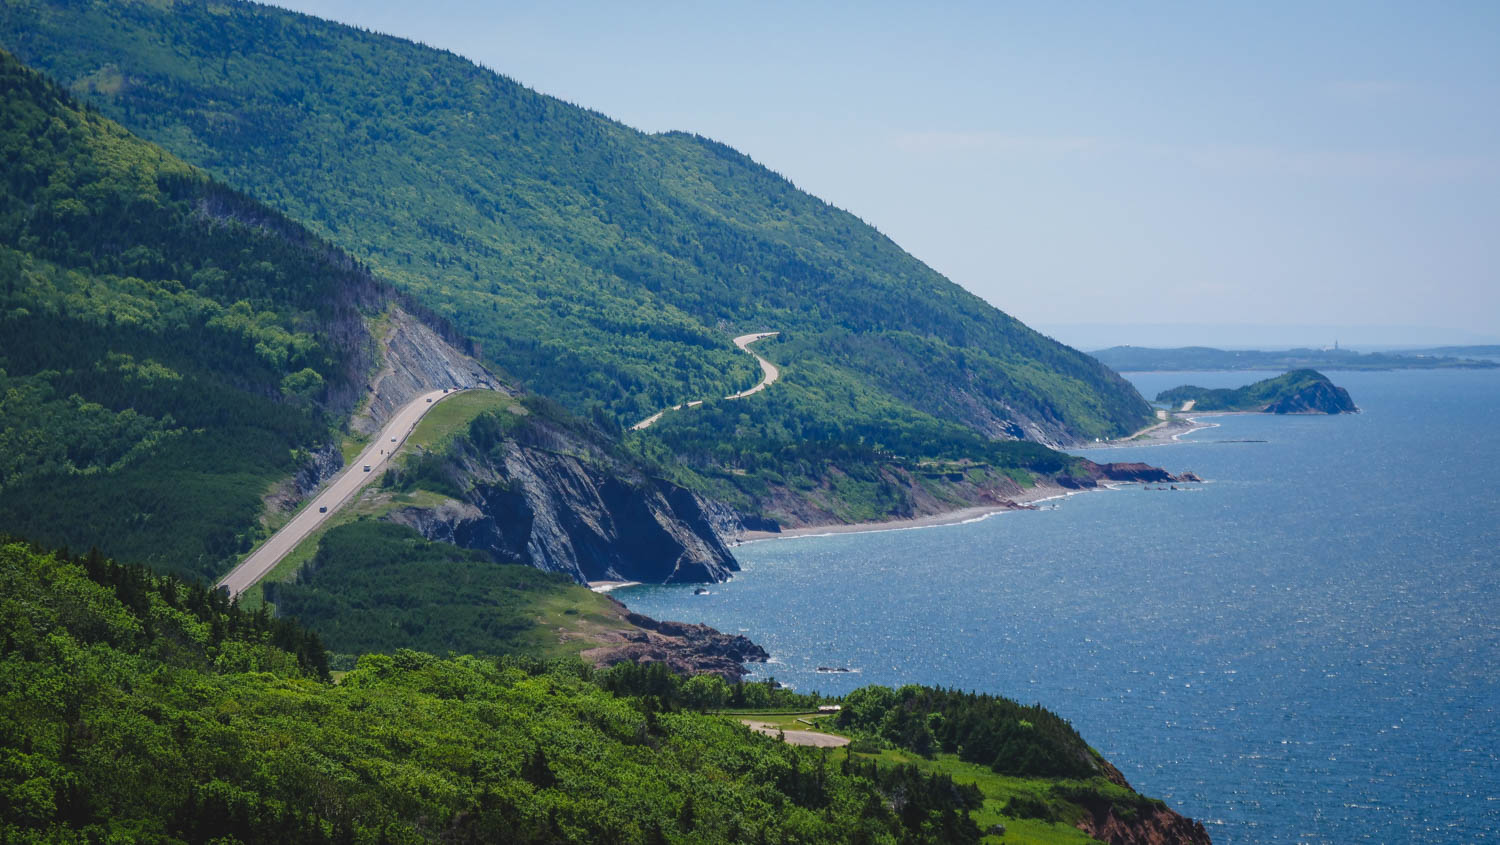 Aerial view of the Cabot Trail in Nova Scotia